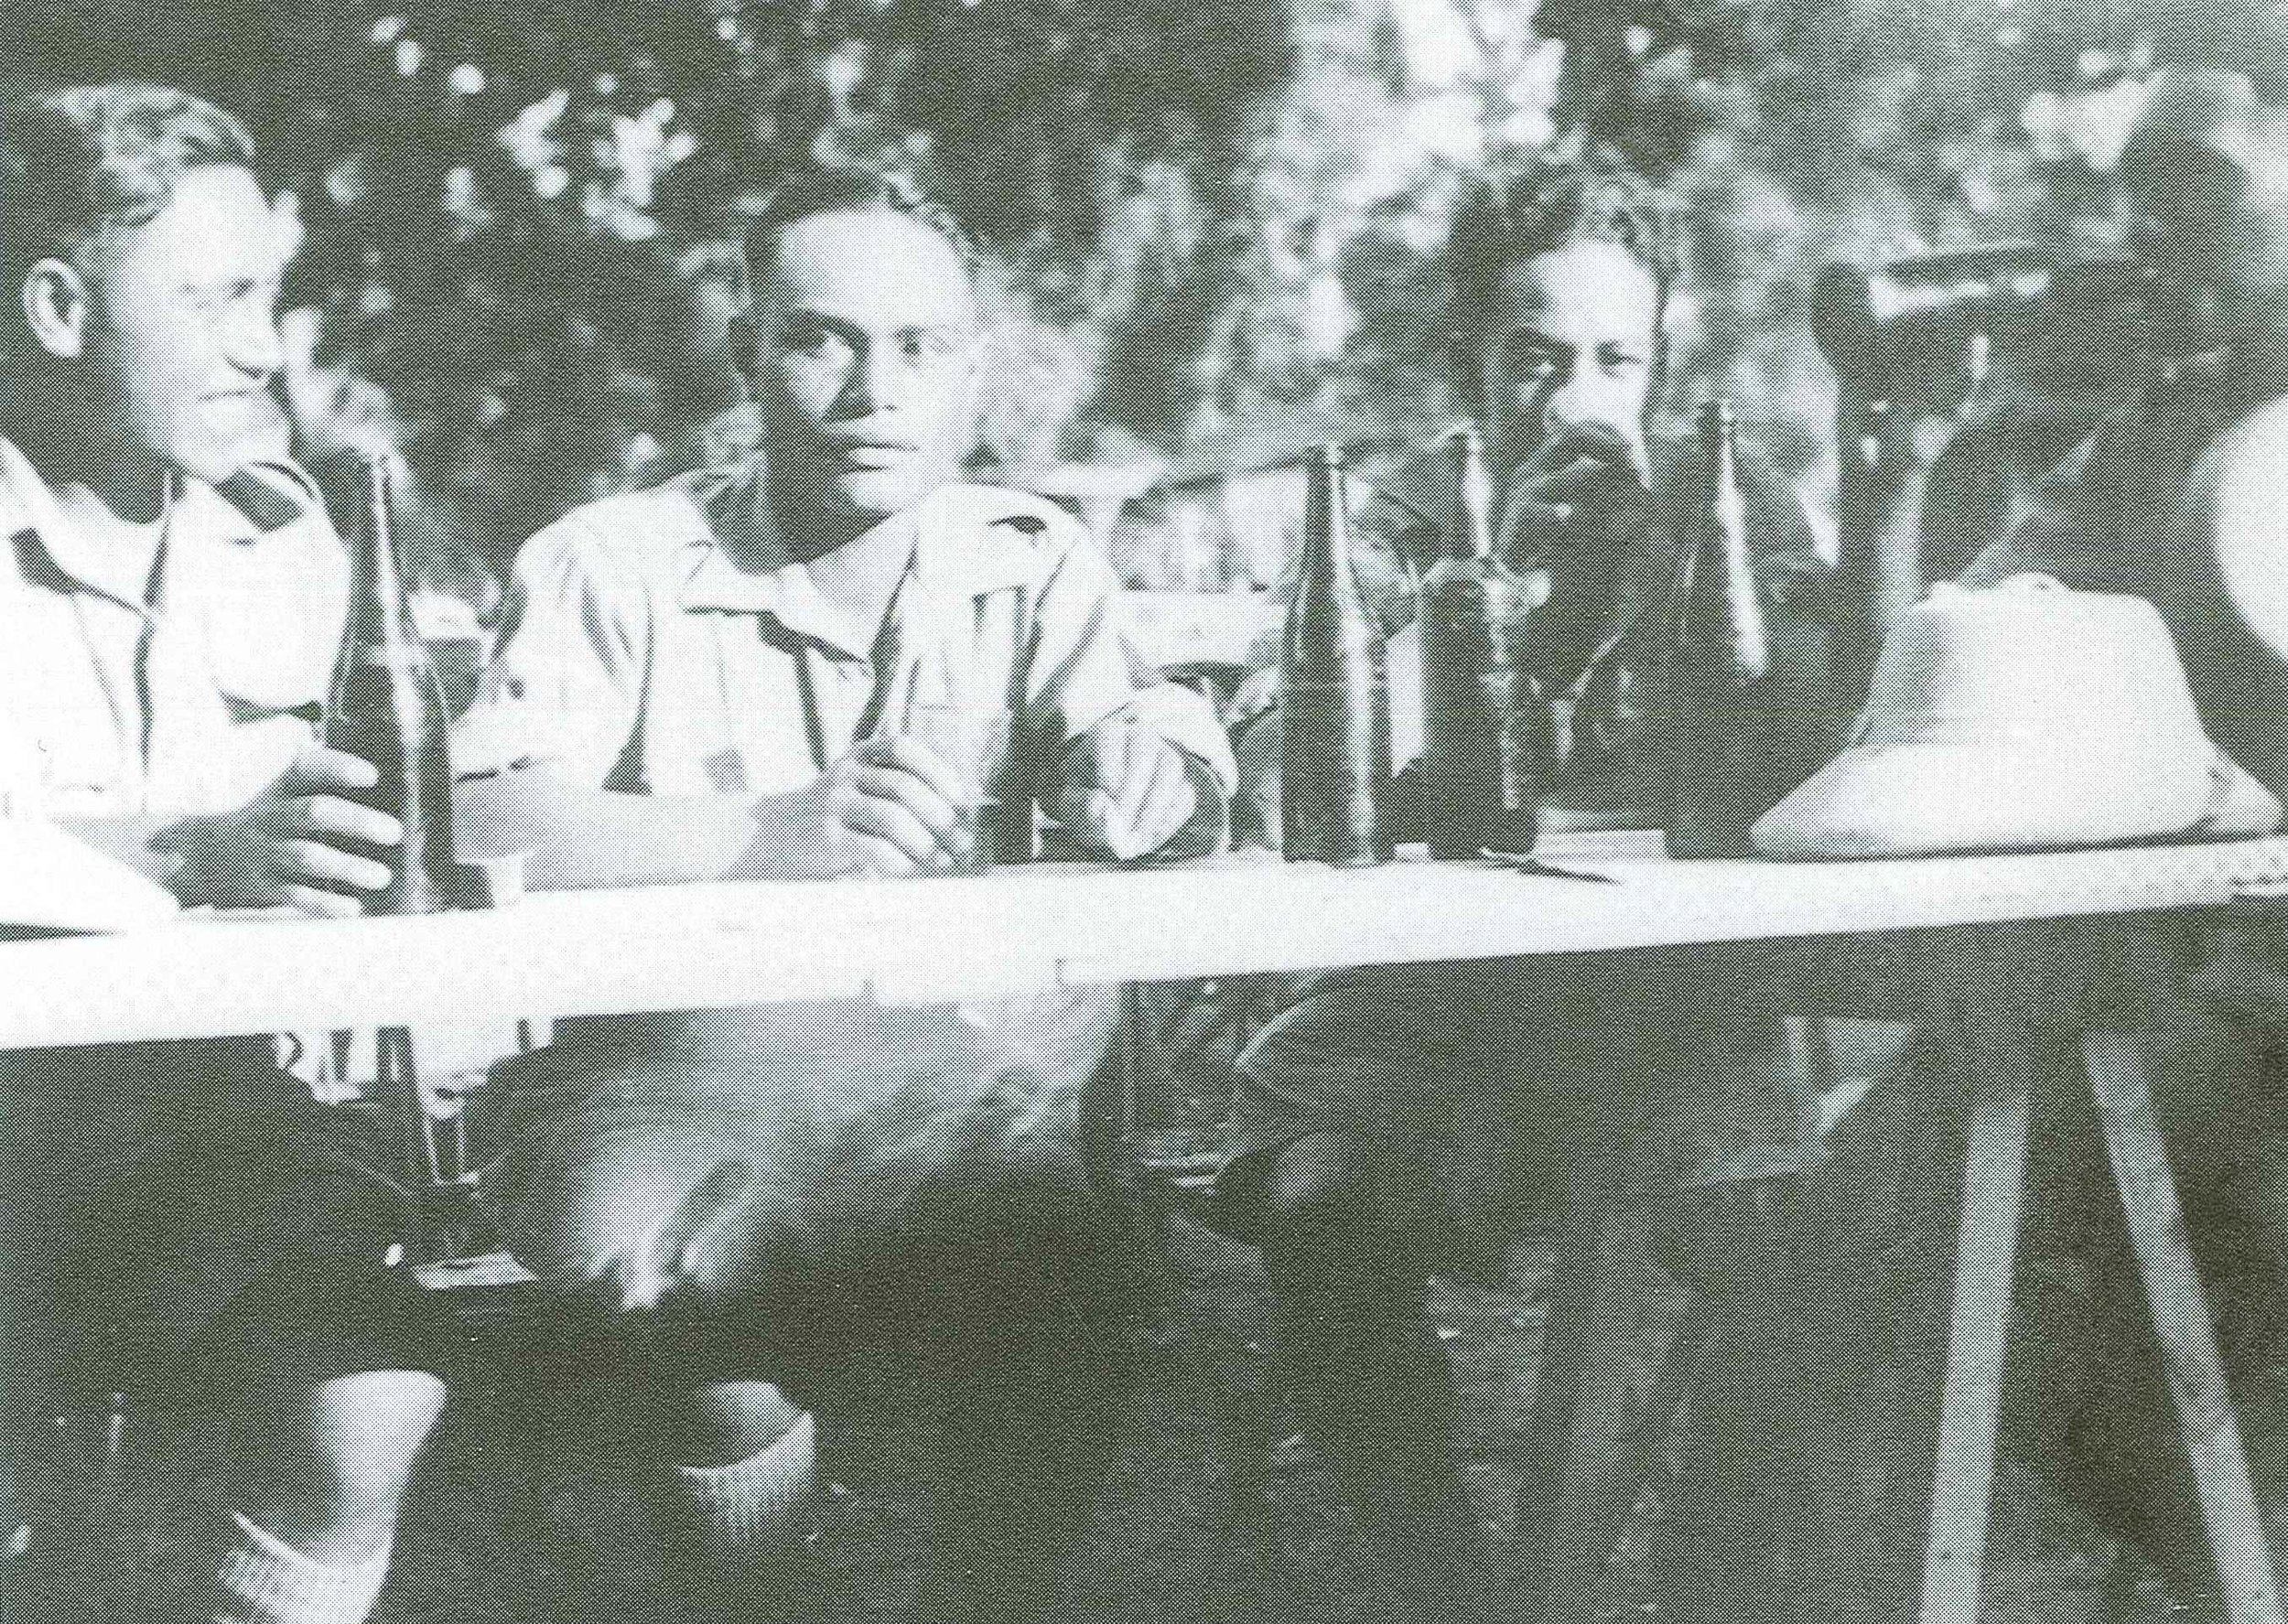 """Figure 5: After they were withdrawn to Egypt, the men of 28th Māori Battalion were given seven days' """"survivors' leave"""". Matarehua Wikiriwhi (far left) enjoys a few beers with Mahuika Waerea, Henry Mathews and Moana Ngarimu. All were part of the intelligence section of Battalion Headquarters. Source: Monty Soutar, Nga Tama Toa – The Price of Citizenship, pg 157."""